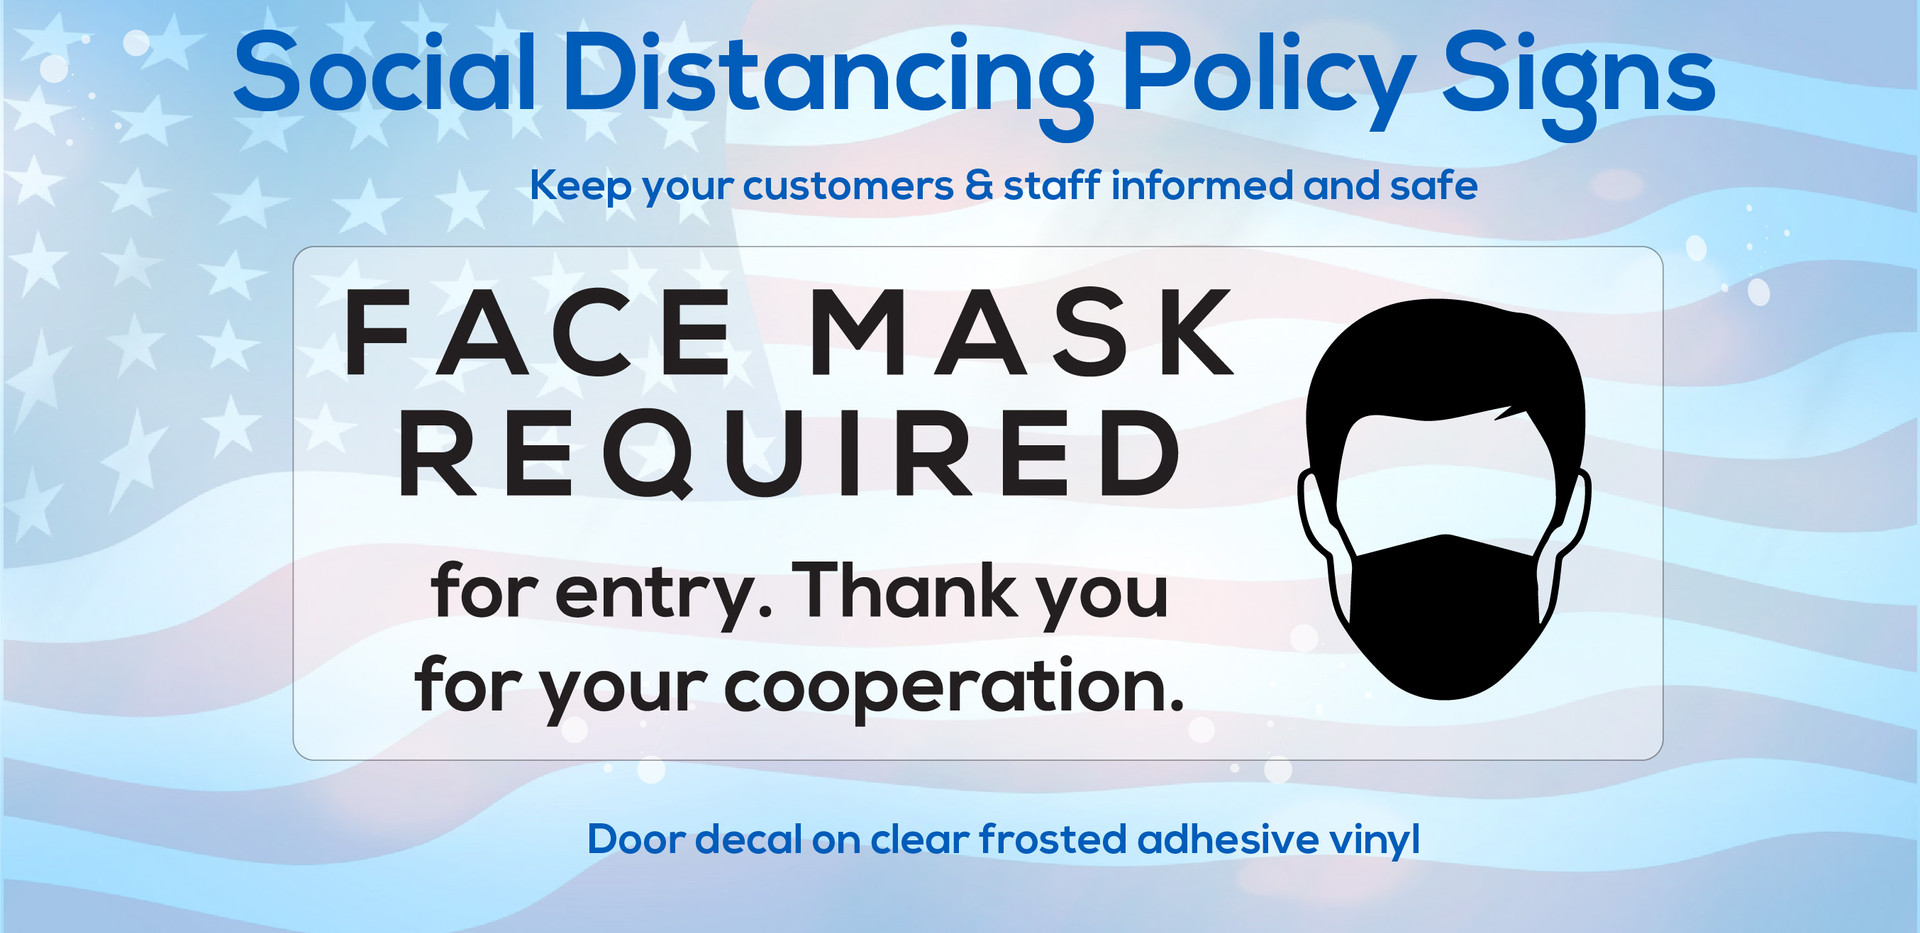 Face mask required social distancing door decal on clear vinyl, letting your customers know updated store policy.  Call 1-800-733-0034 to create your custom decal today.